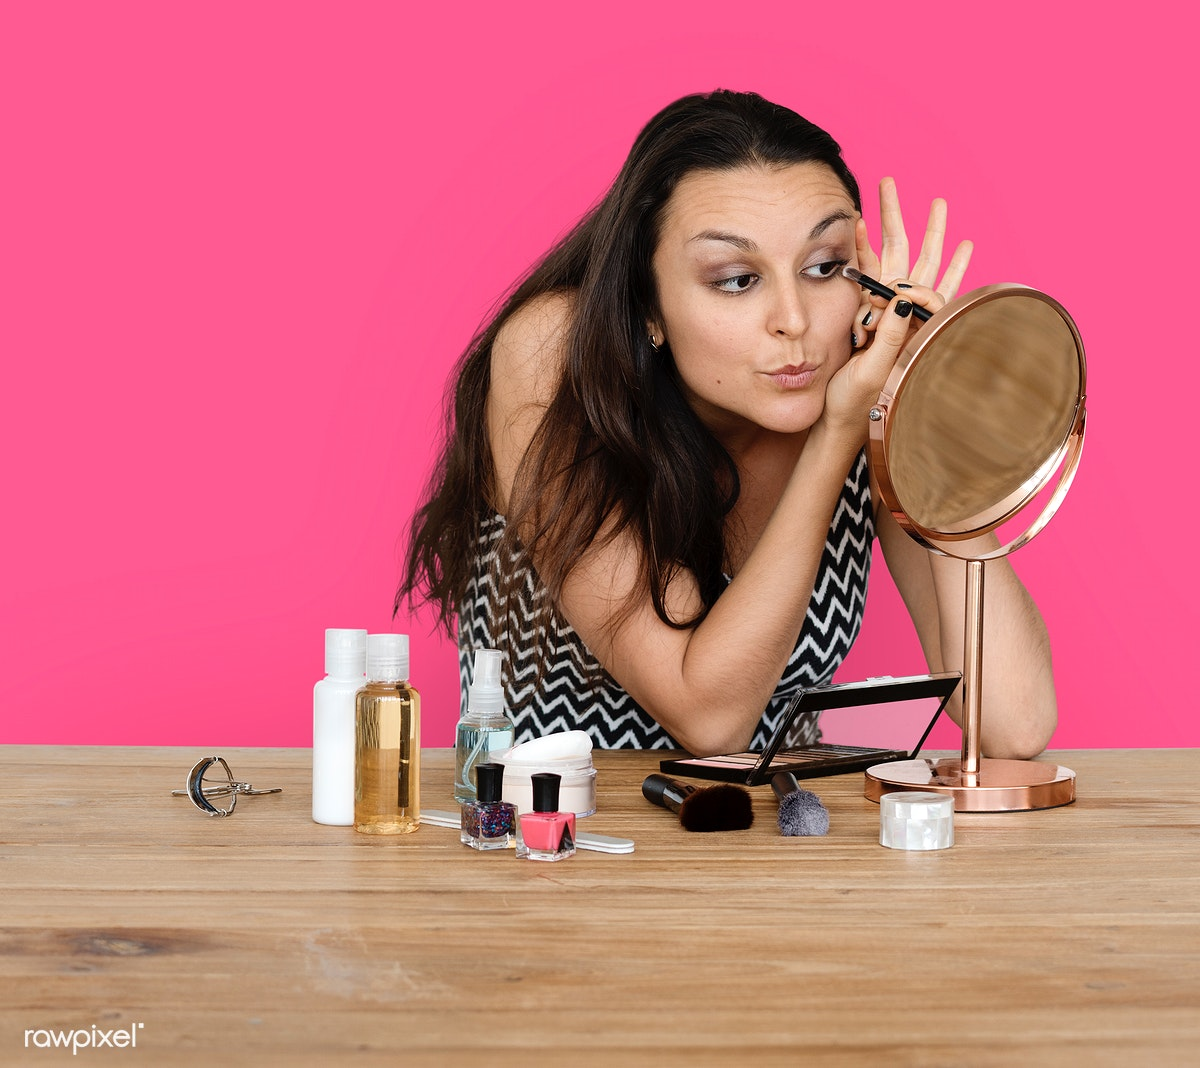 Download premium image of Woman making up her face with cosmetics 246011